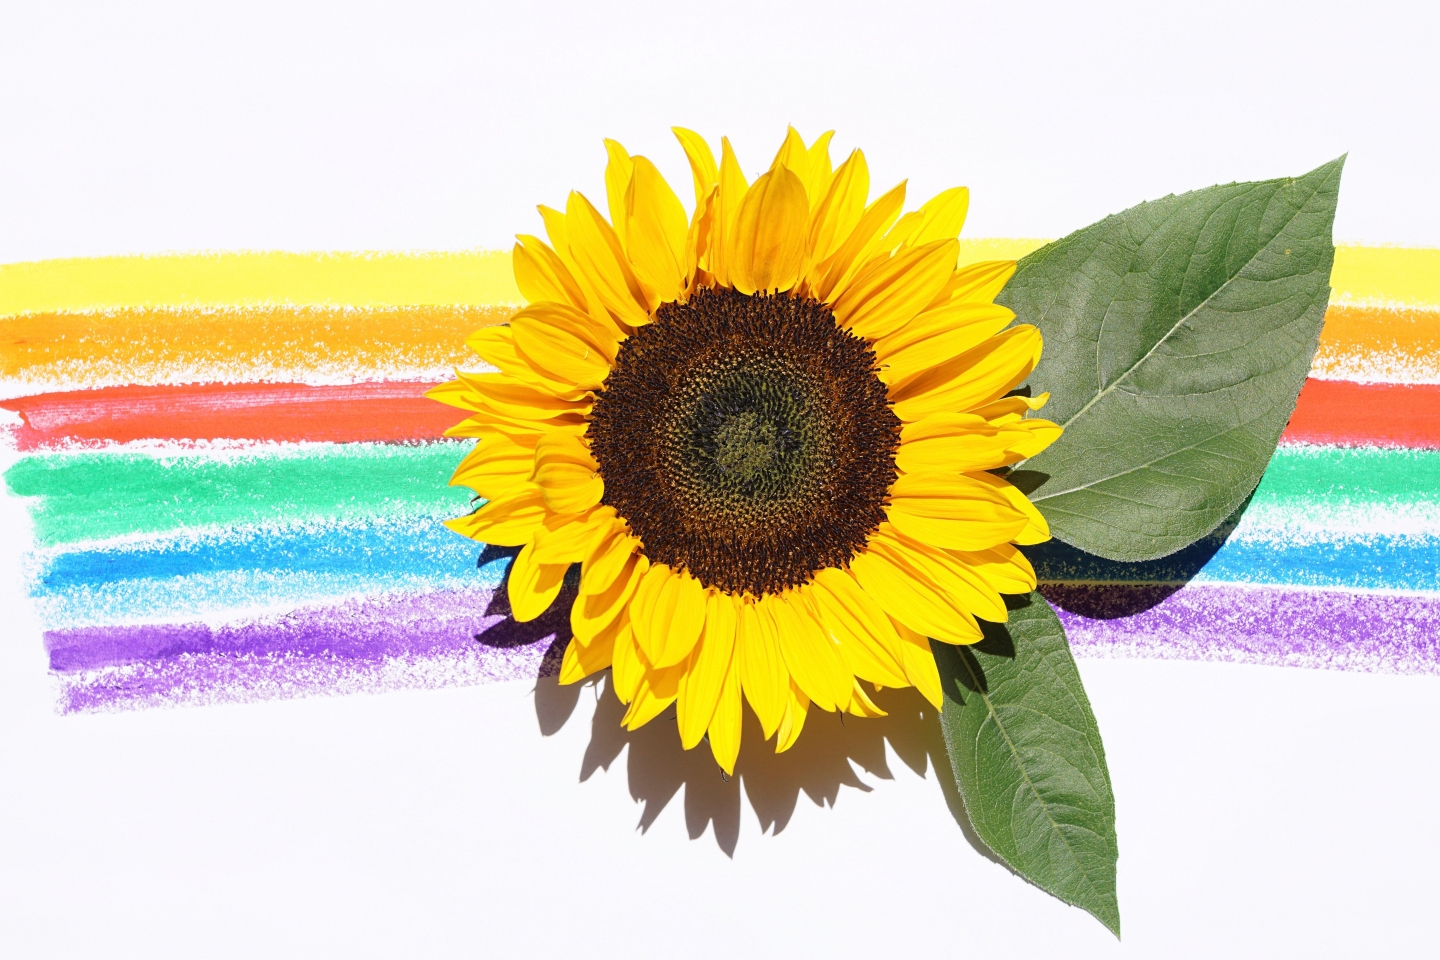 Sunflower and children's rainbow crayon